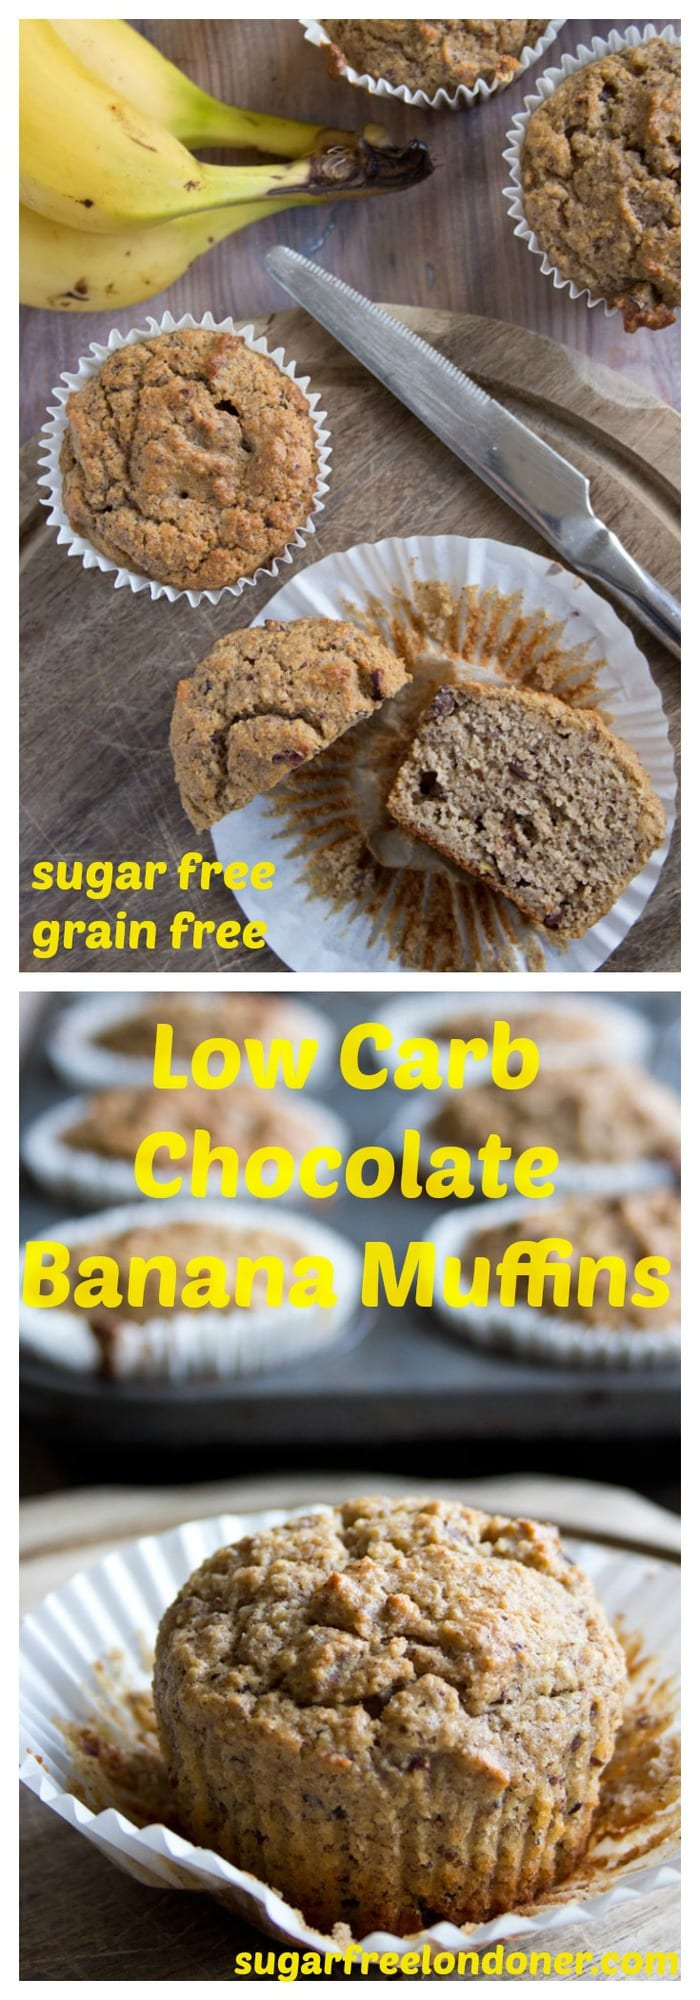 A fabulously healthy treat: These delicious Low Carb Chocolate Banana Muffins are grain free, sugar free and seriously nutrient-dense. This is feel-good snacking taken to the next level. #lowcarbmuffins #lowcarb #sugarfree #breakfastmuffins